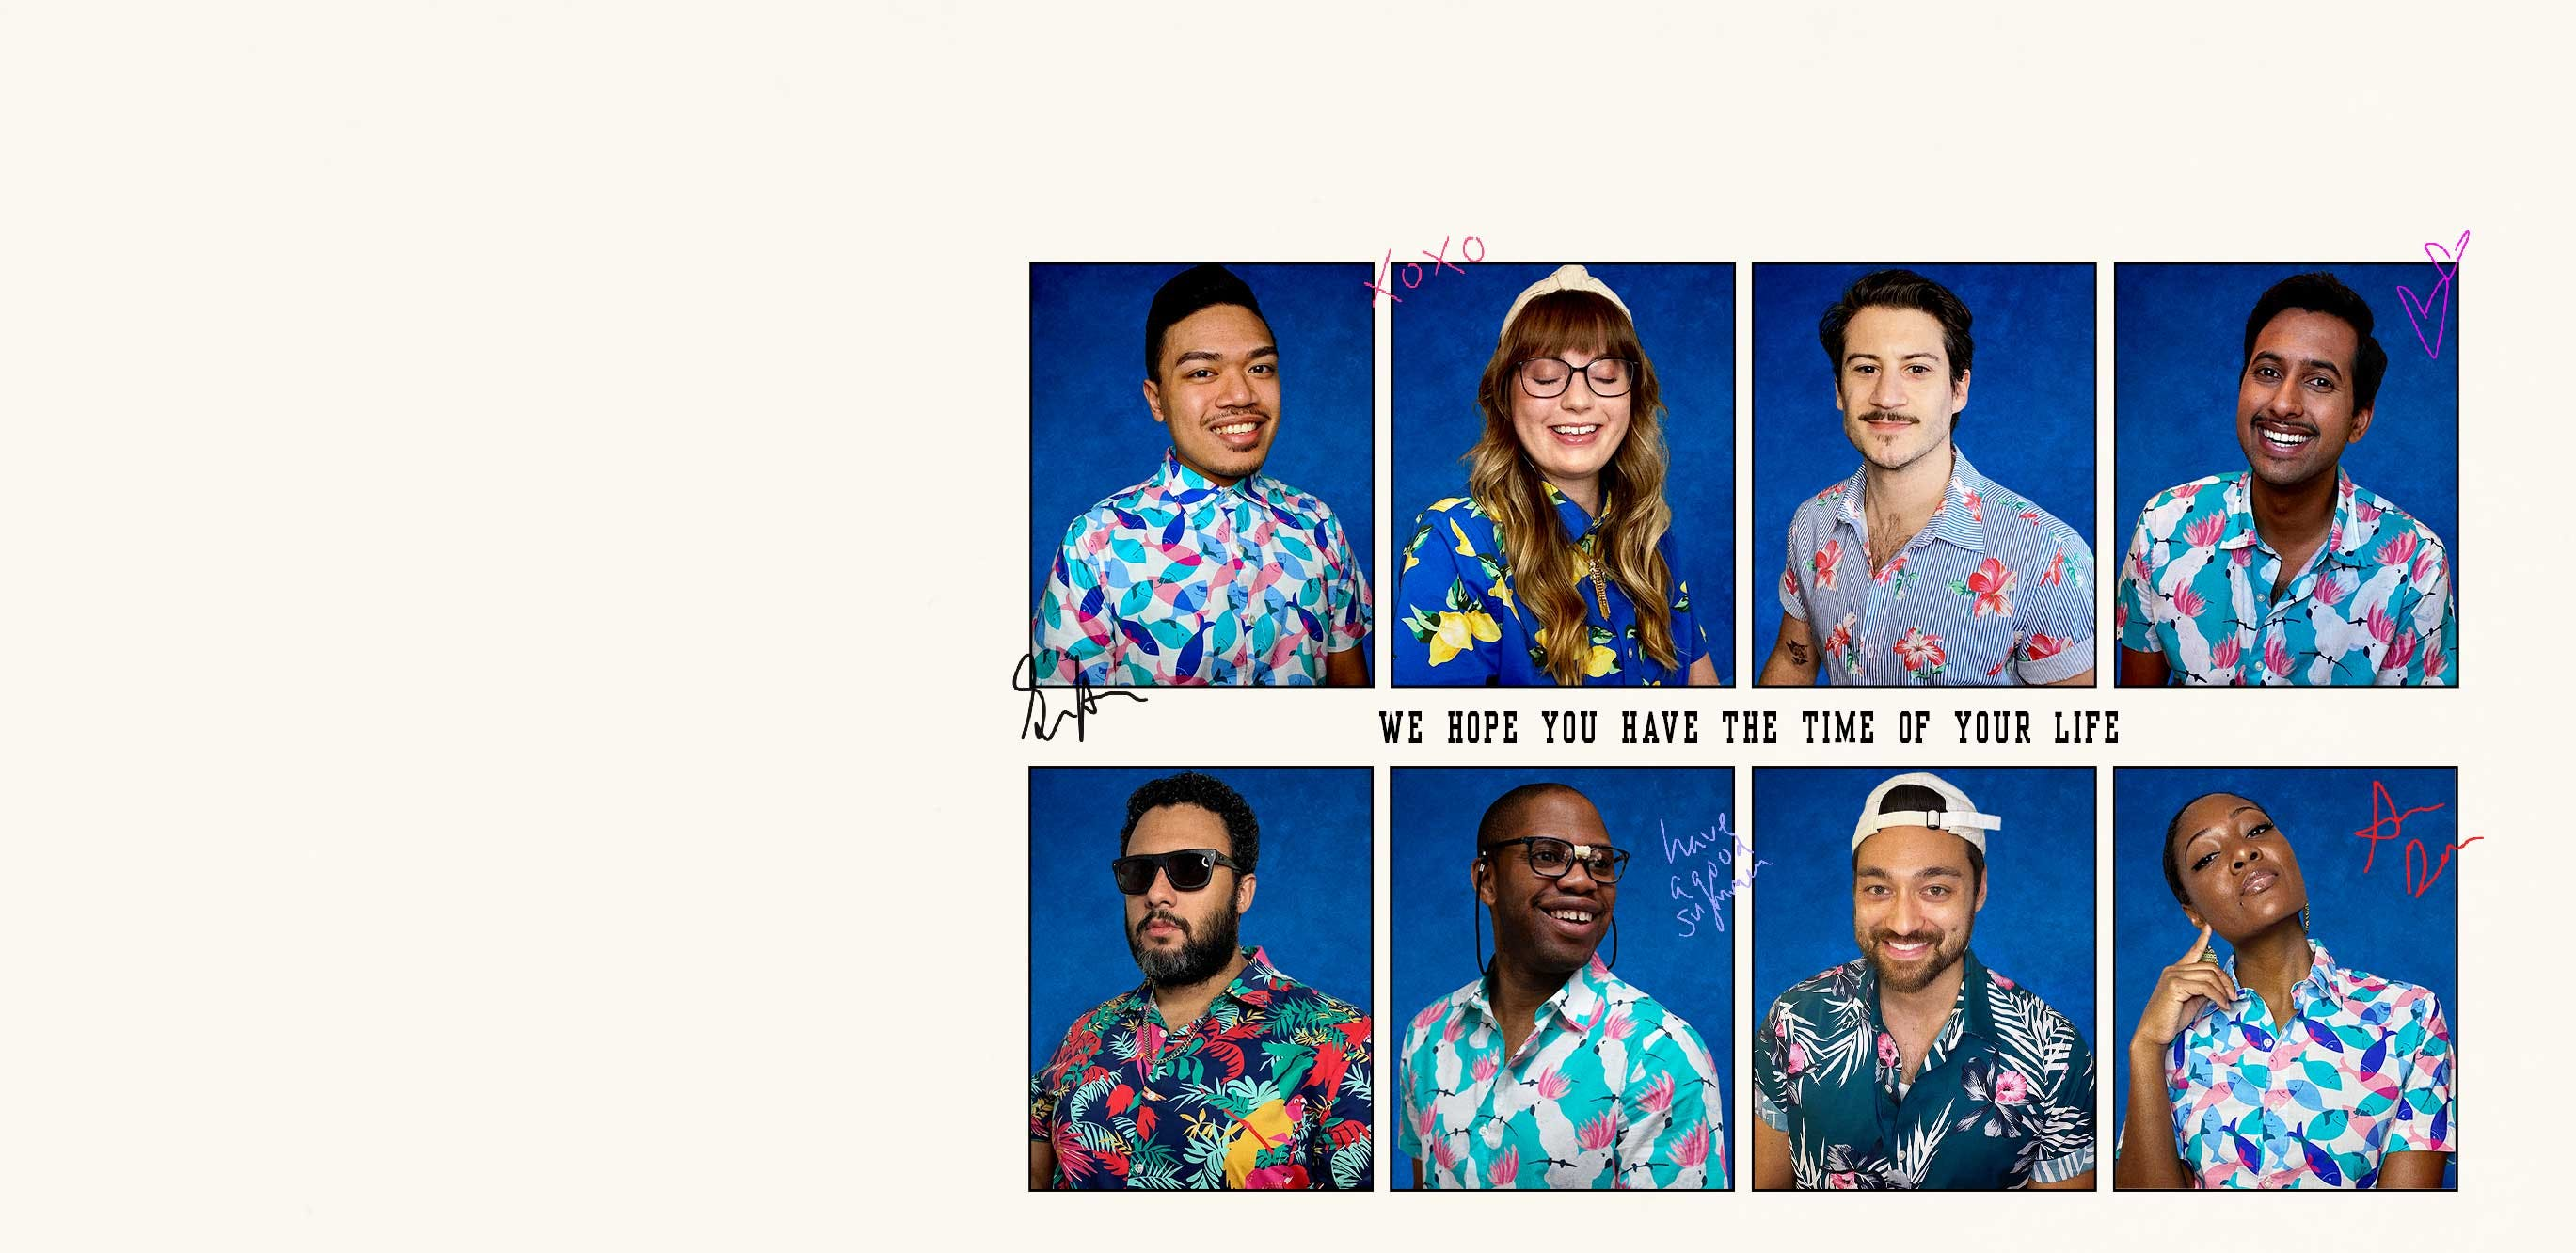 Yearbook-style collage of people wearing colorful, printed shirts